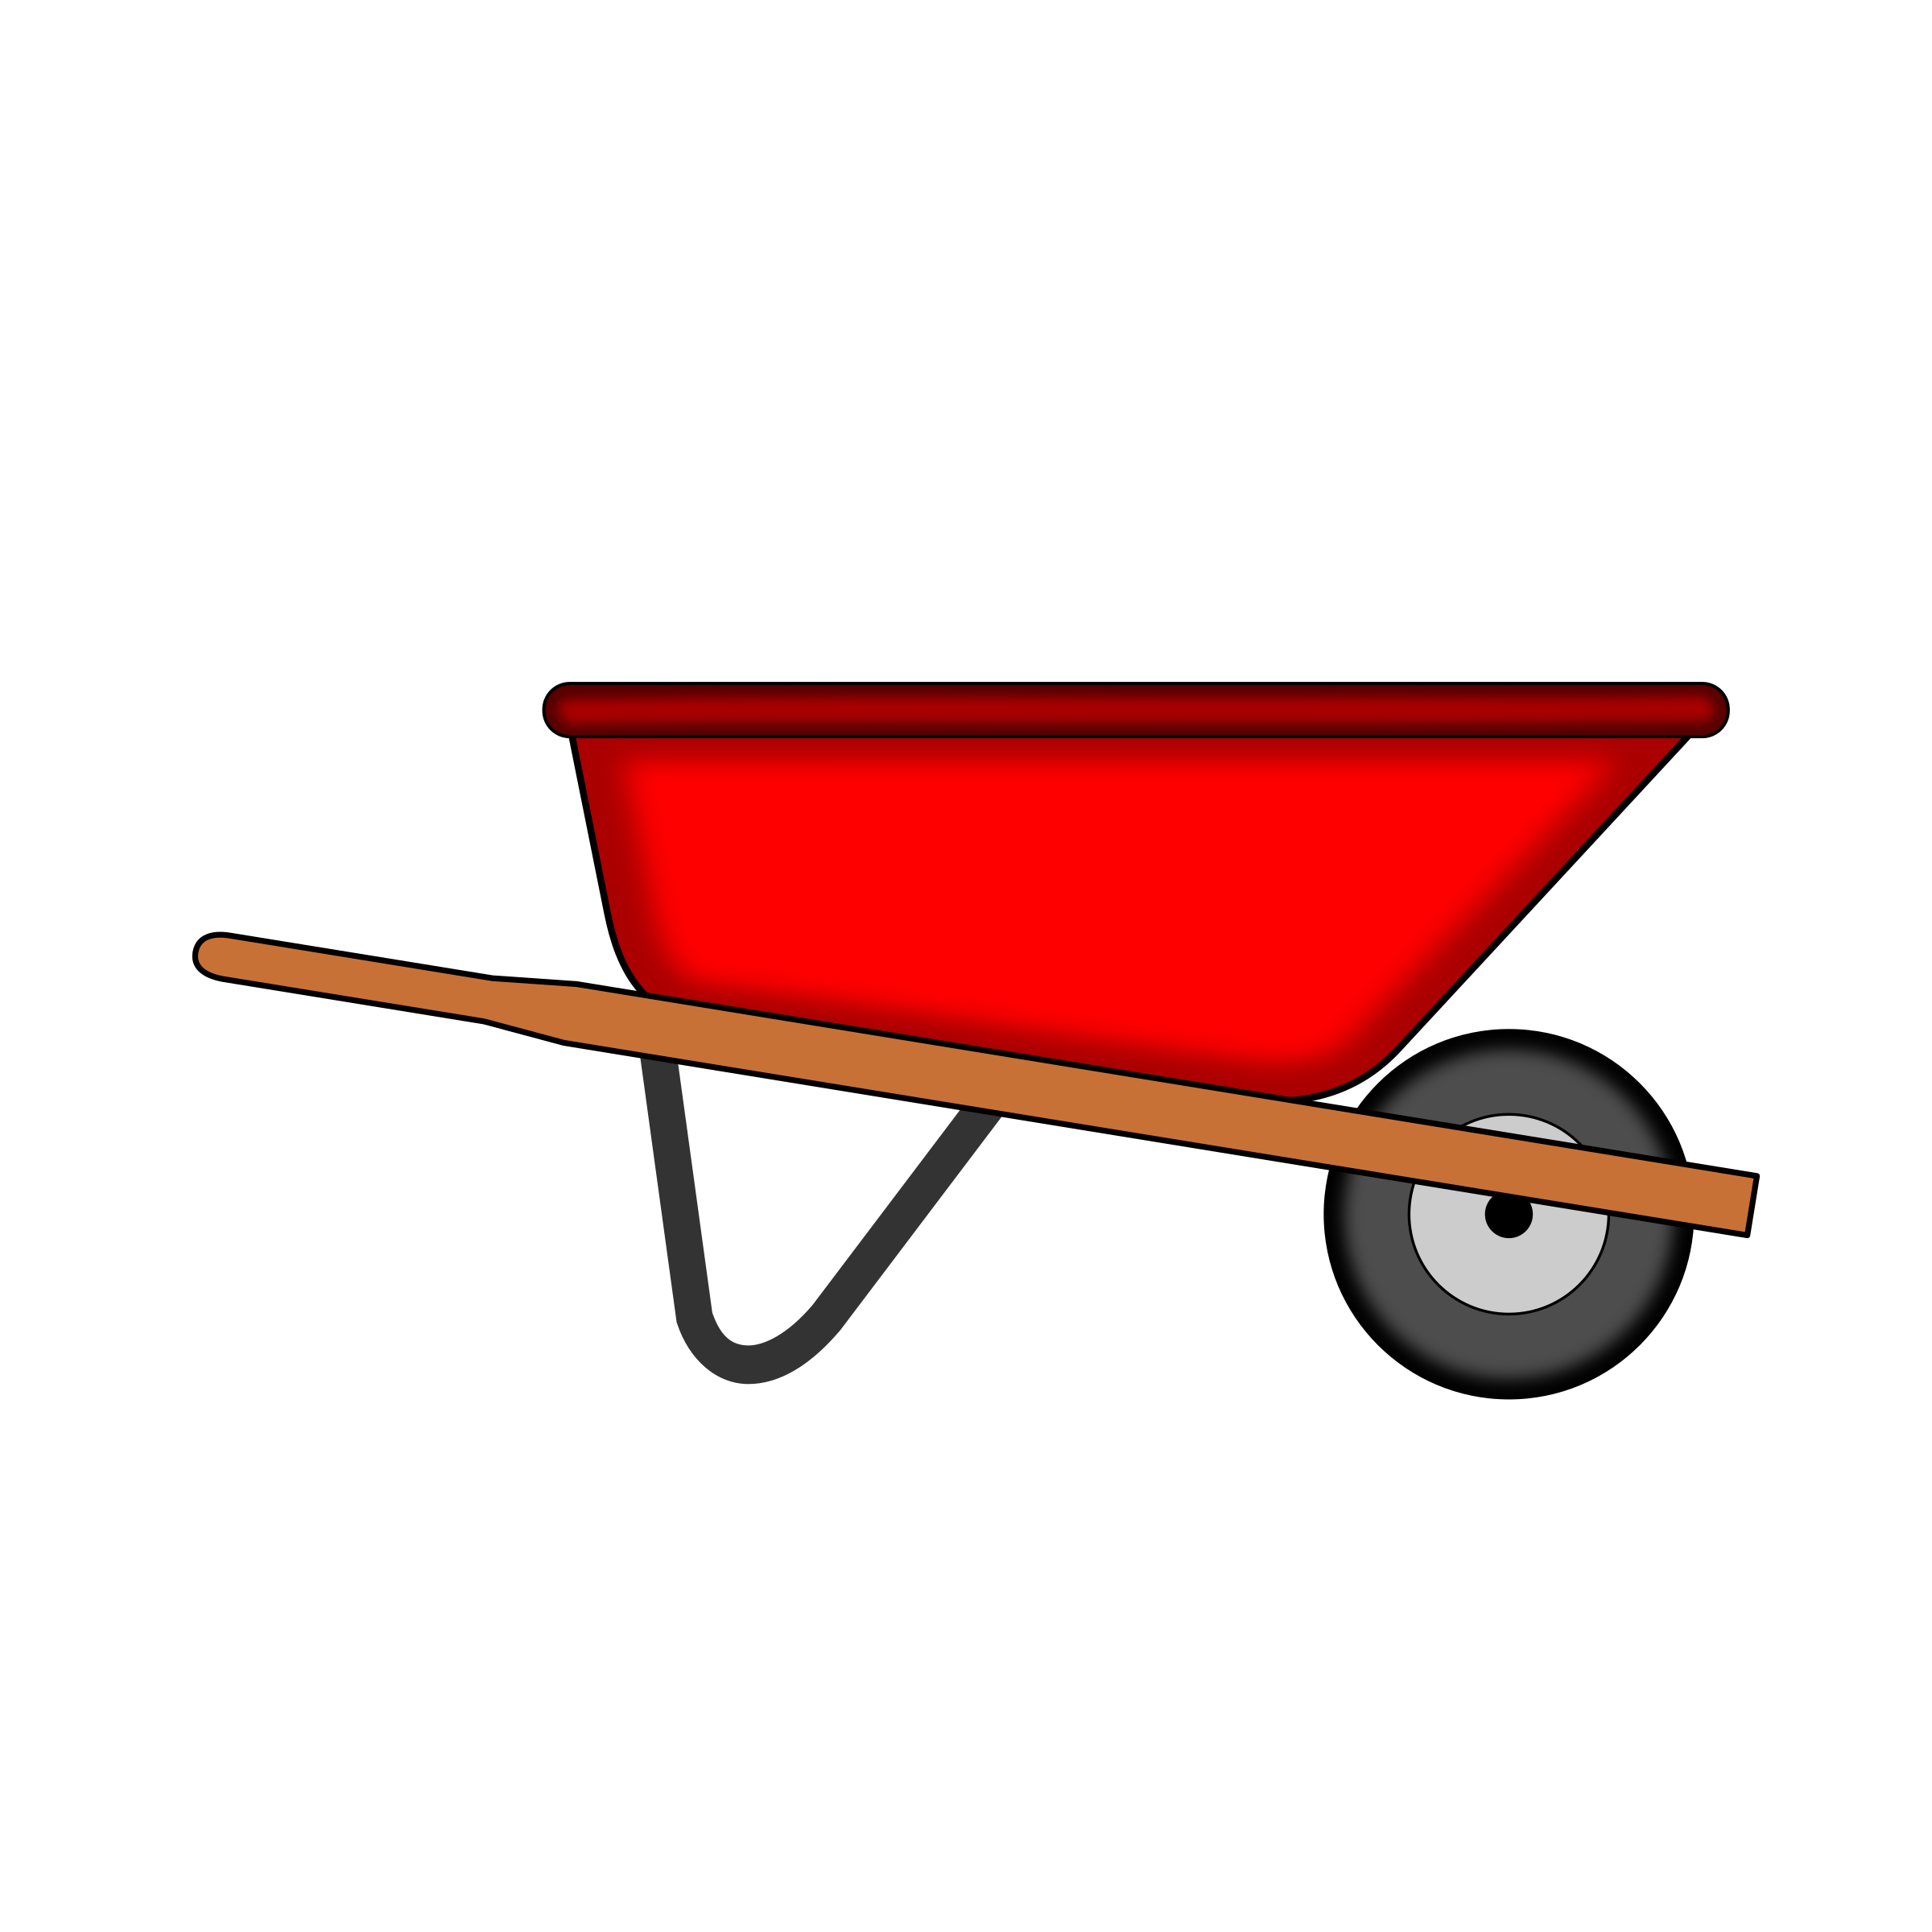 vector black and white library Frames illustrations red icons. Wheelbarrow clipart transparent background.